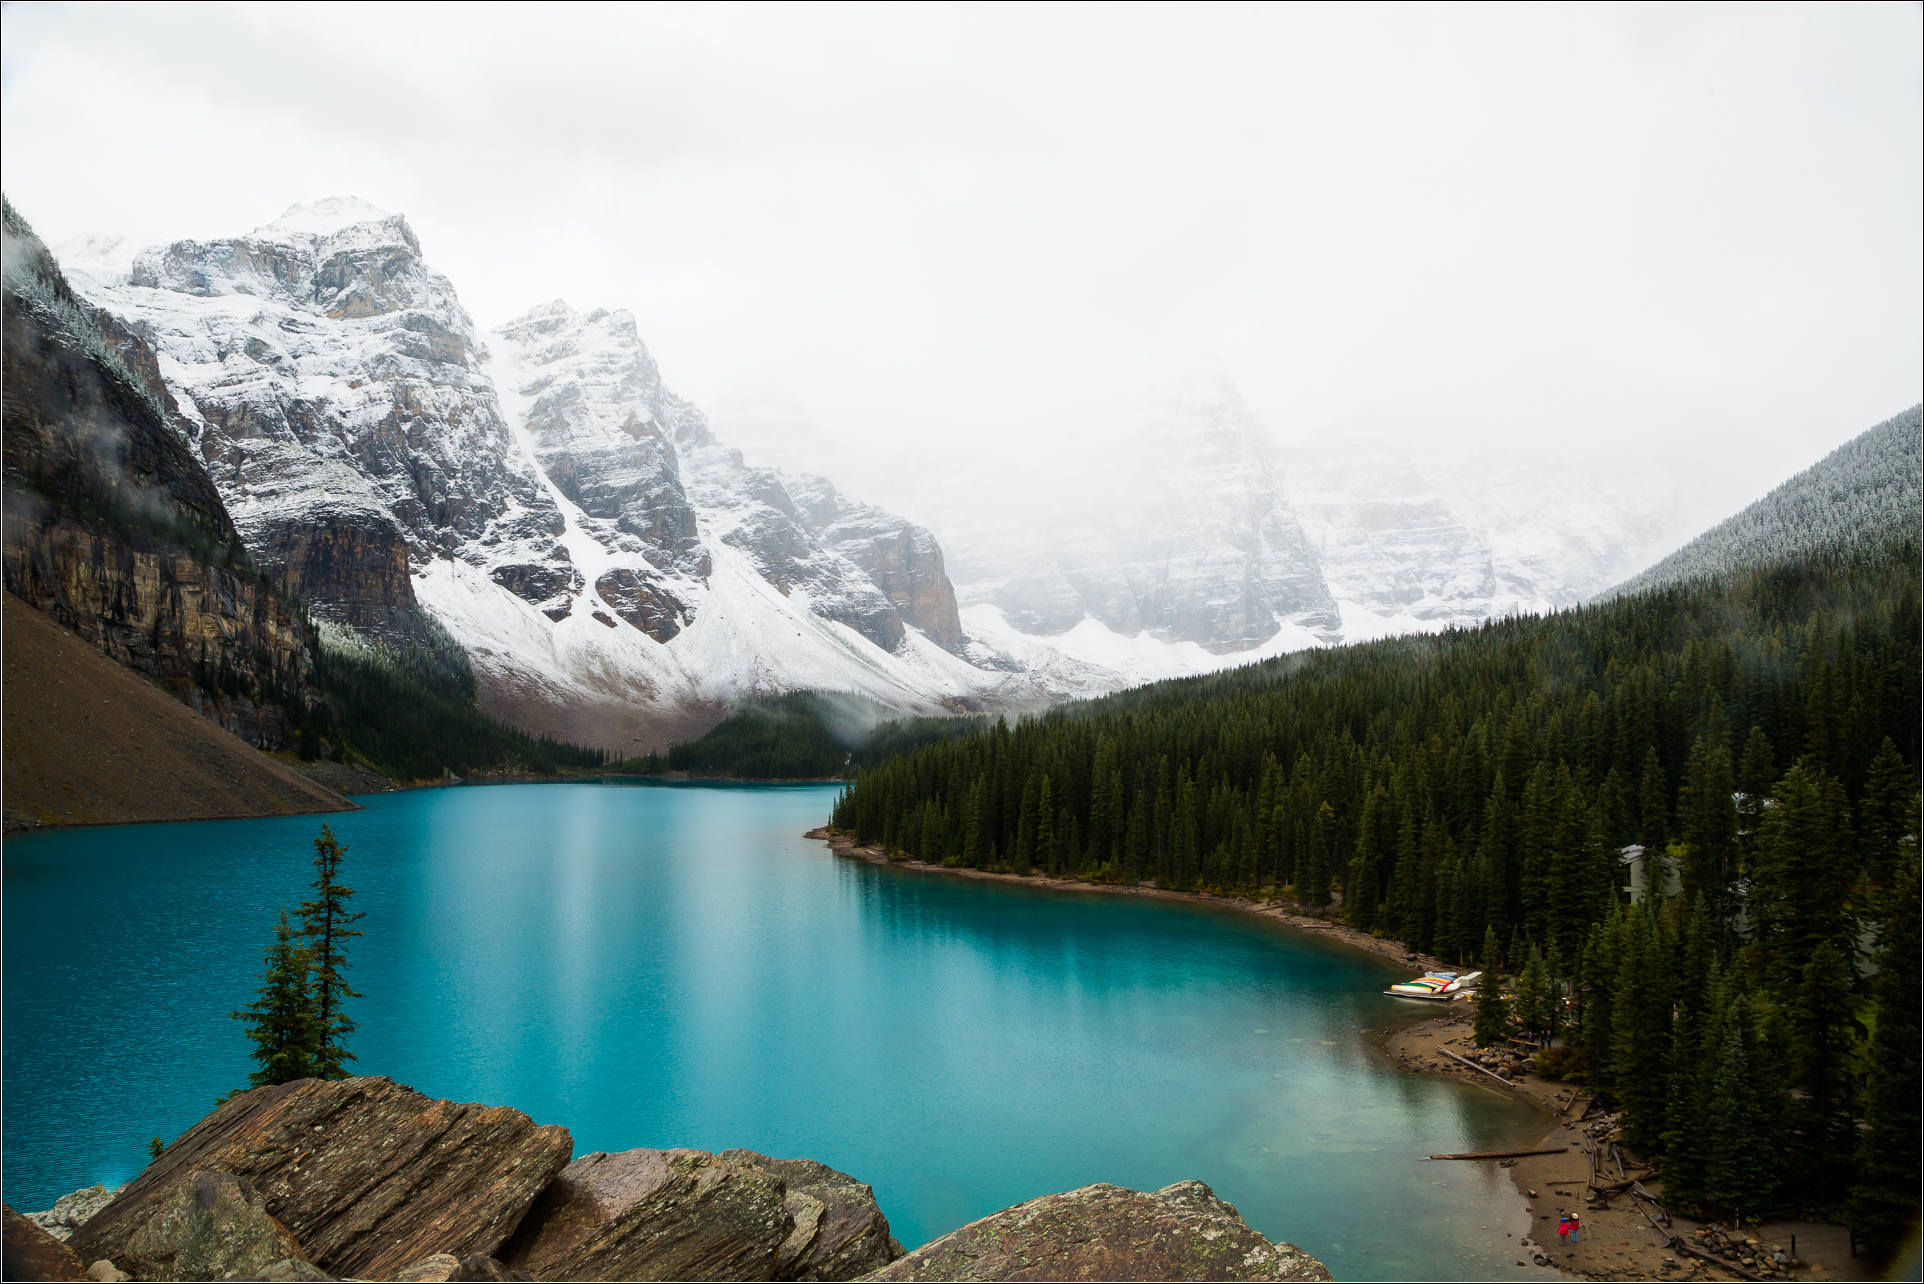 moraine-chilled-in-summer-christopher-martin-4046